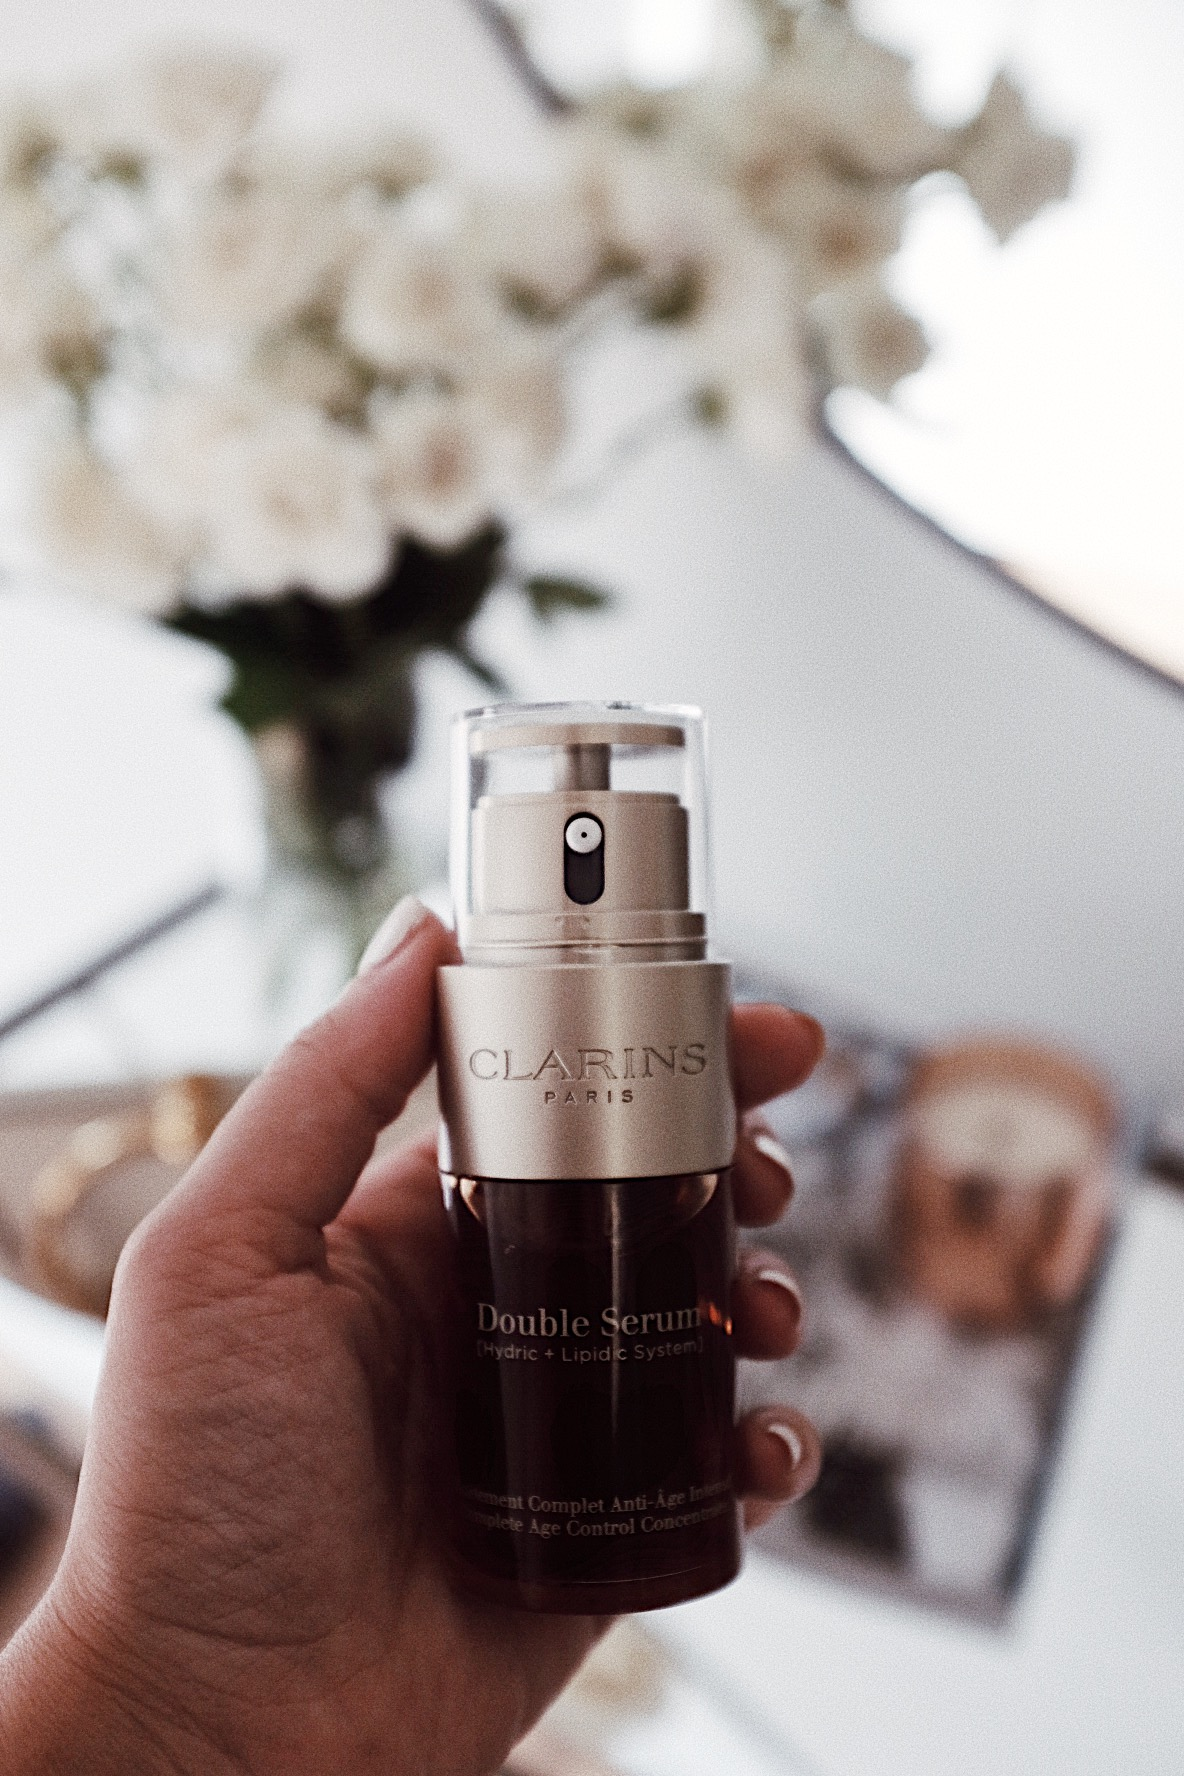 Style MBA on Clarins' Double Serum